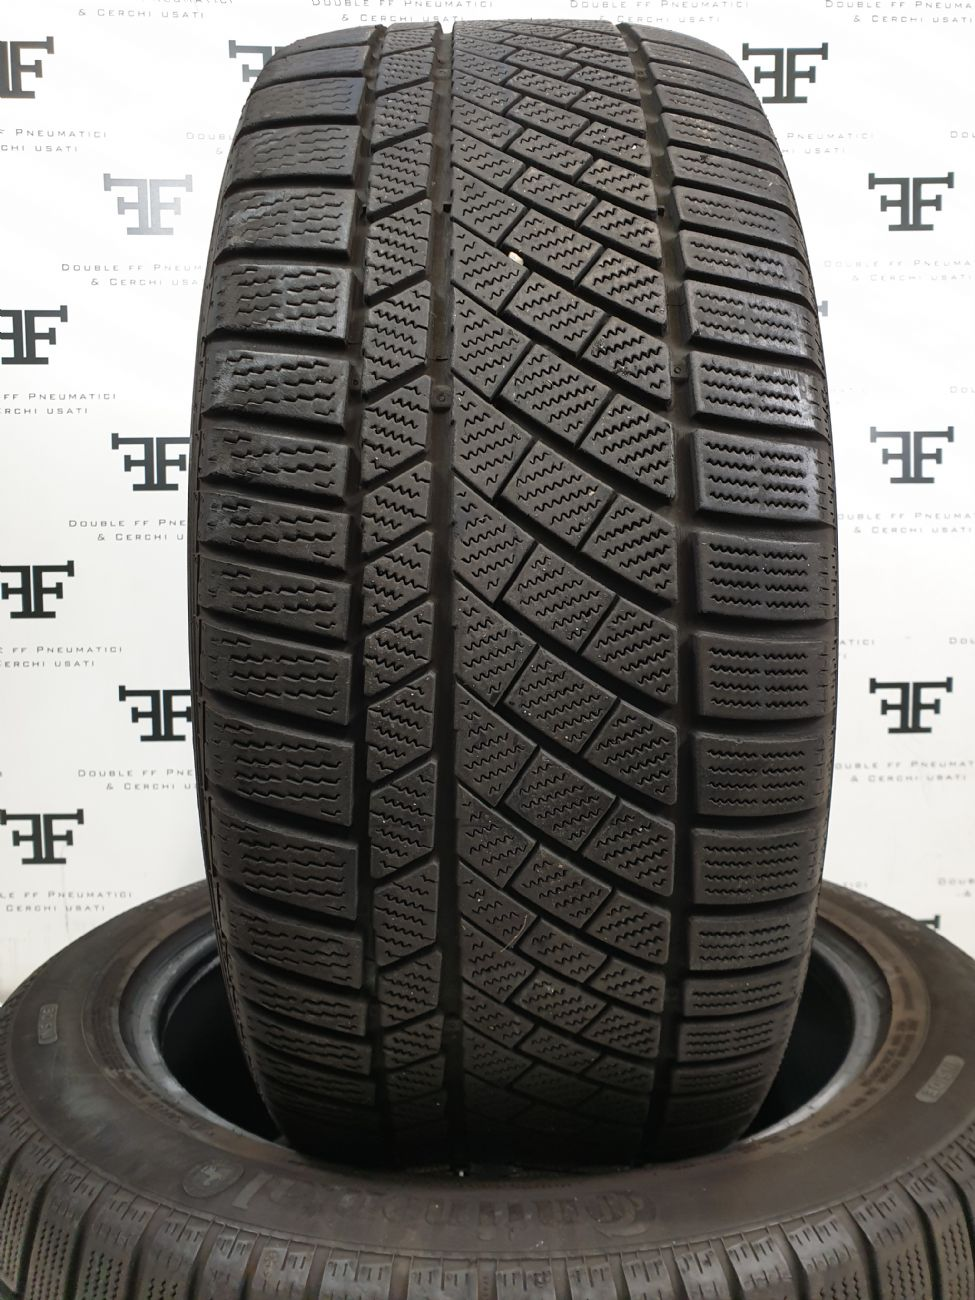 Pneumatici 255 50 R19 107 V CONTINENTAL ContiWinterContact TS 830 P invernale RUNFLAT usati 220€